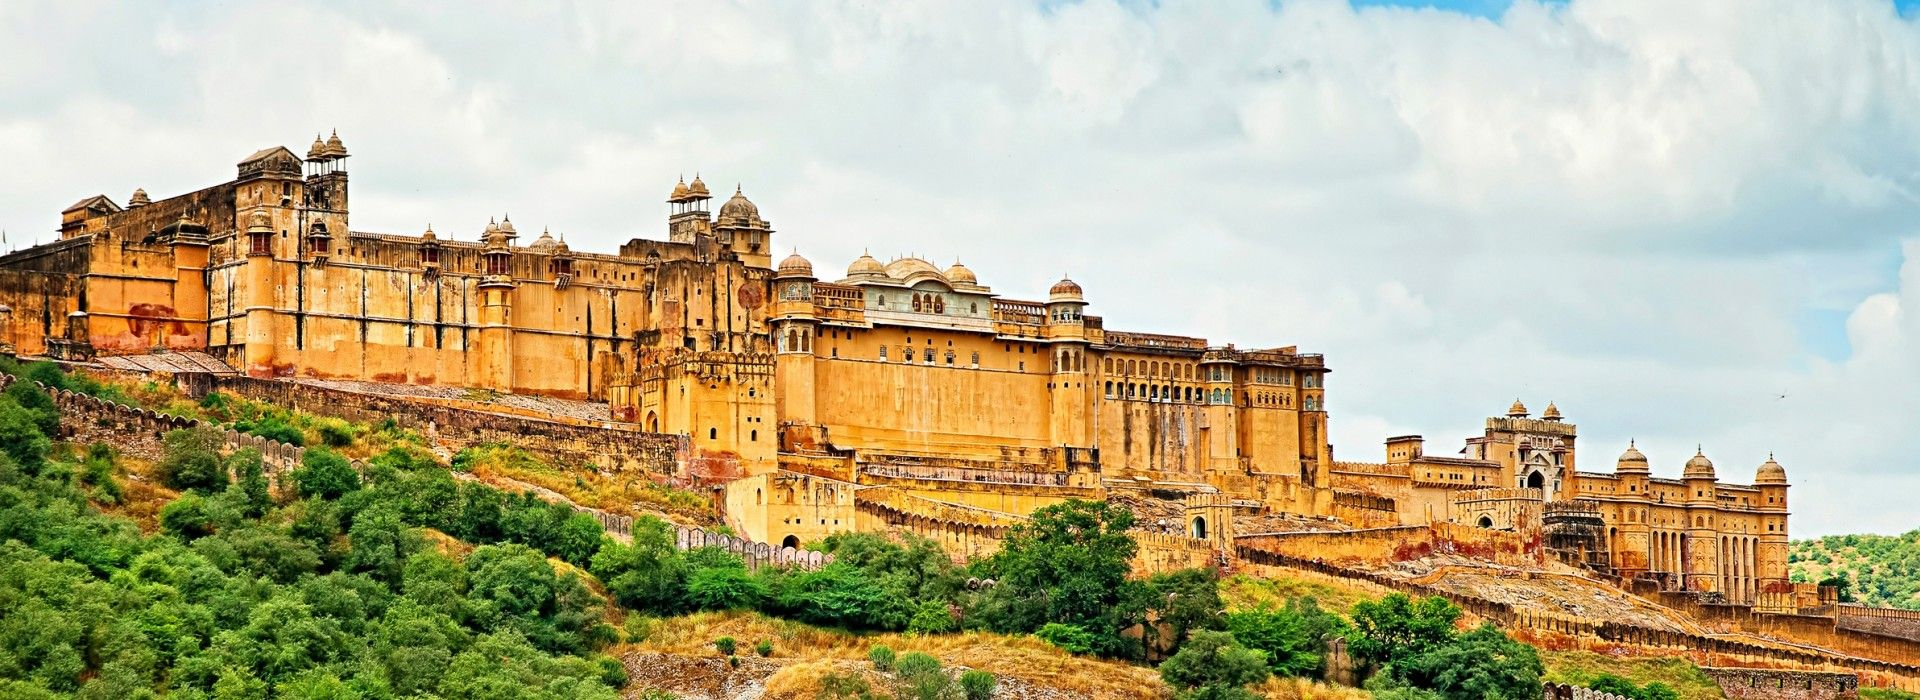 Jaipur Tours and Holidays 2019/2020